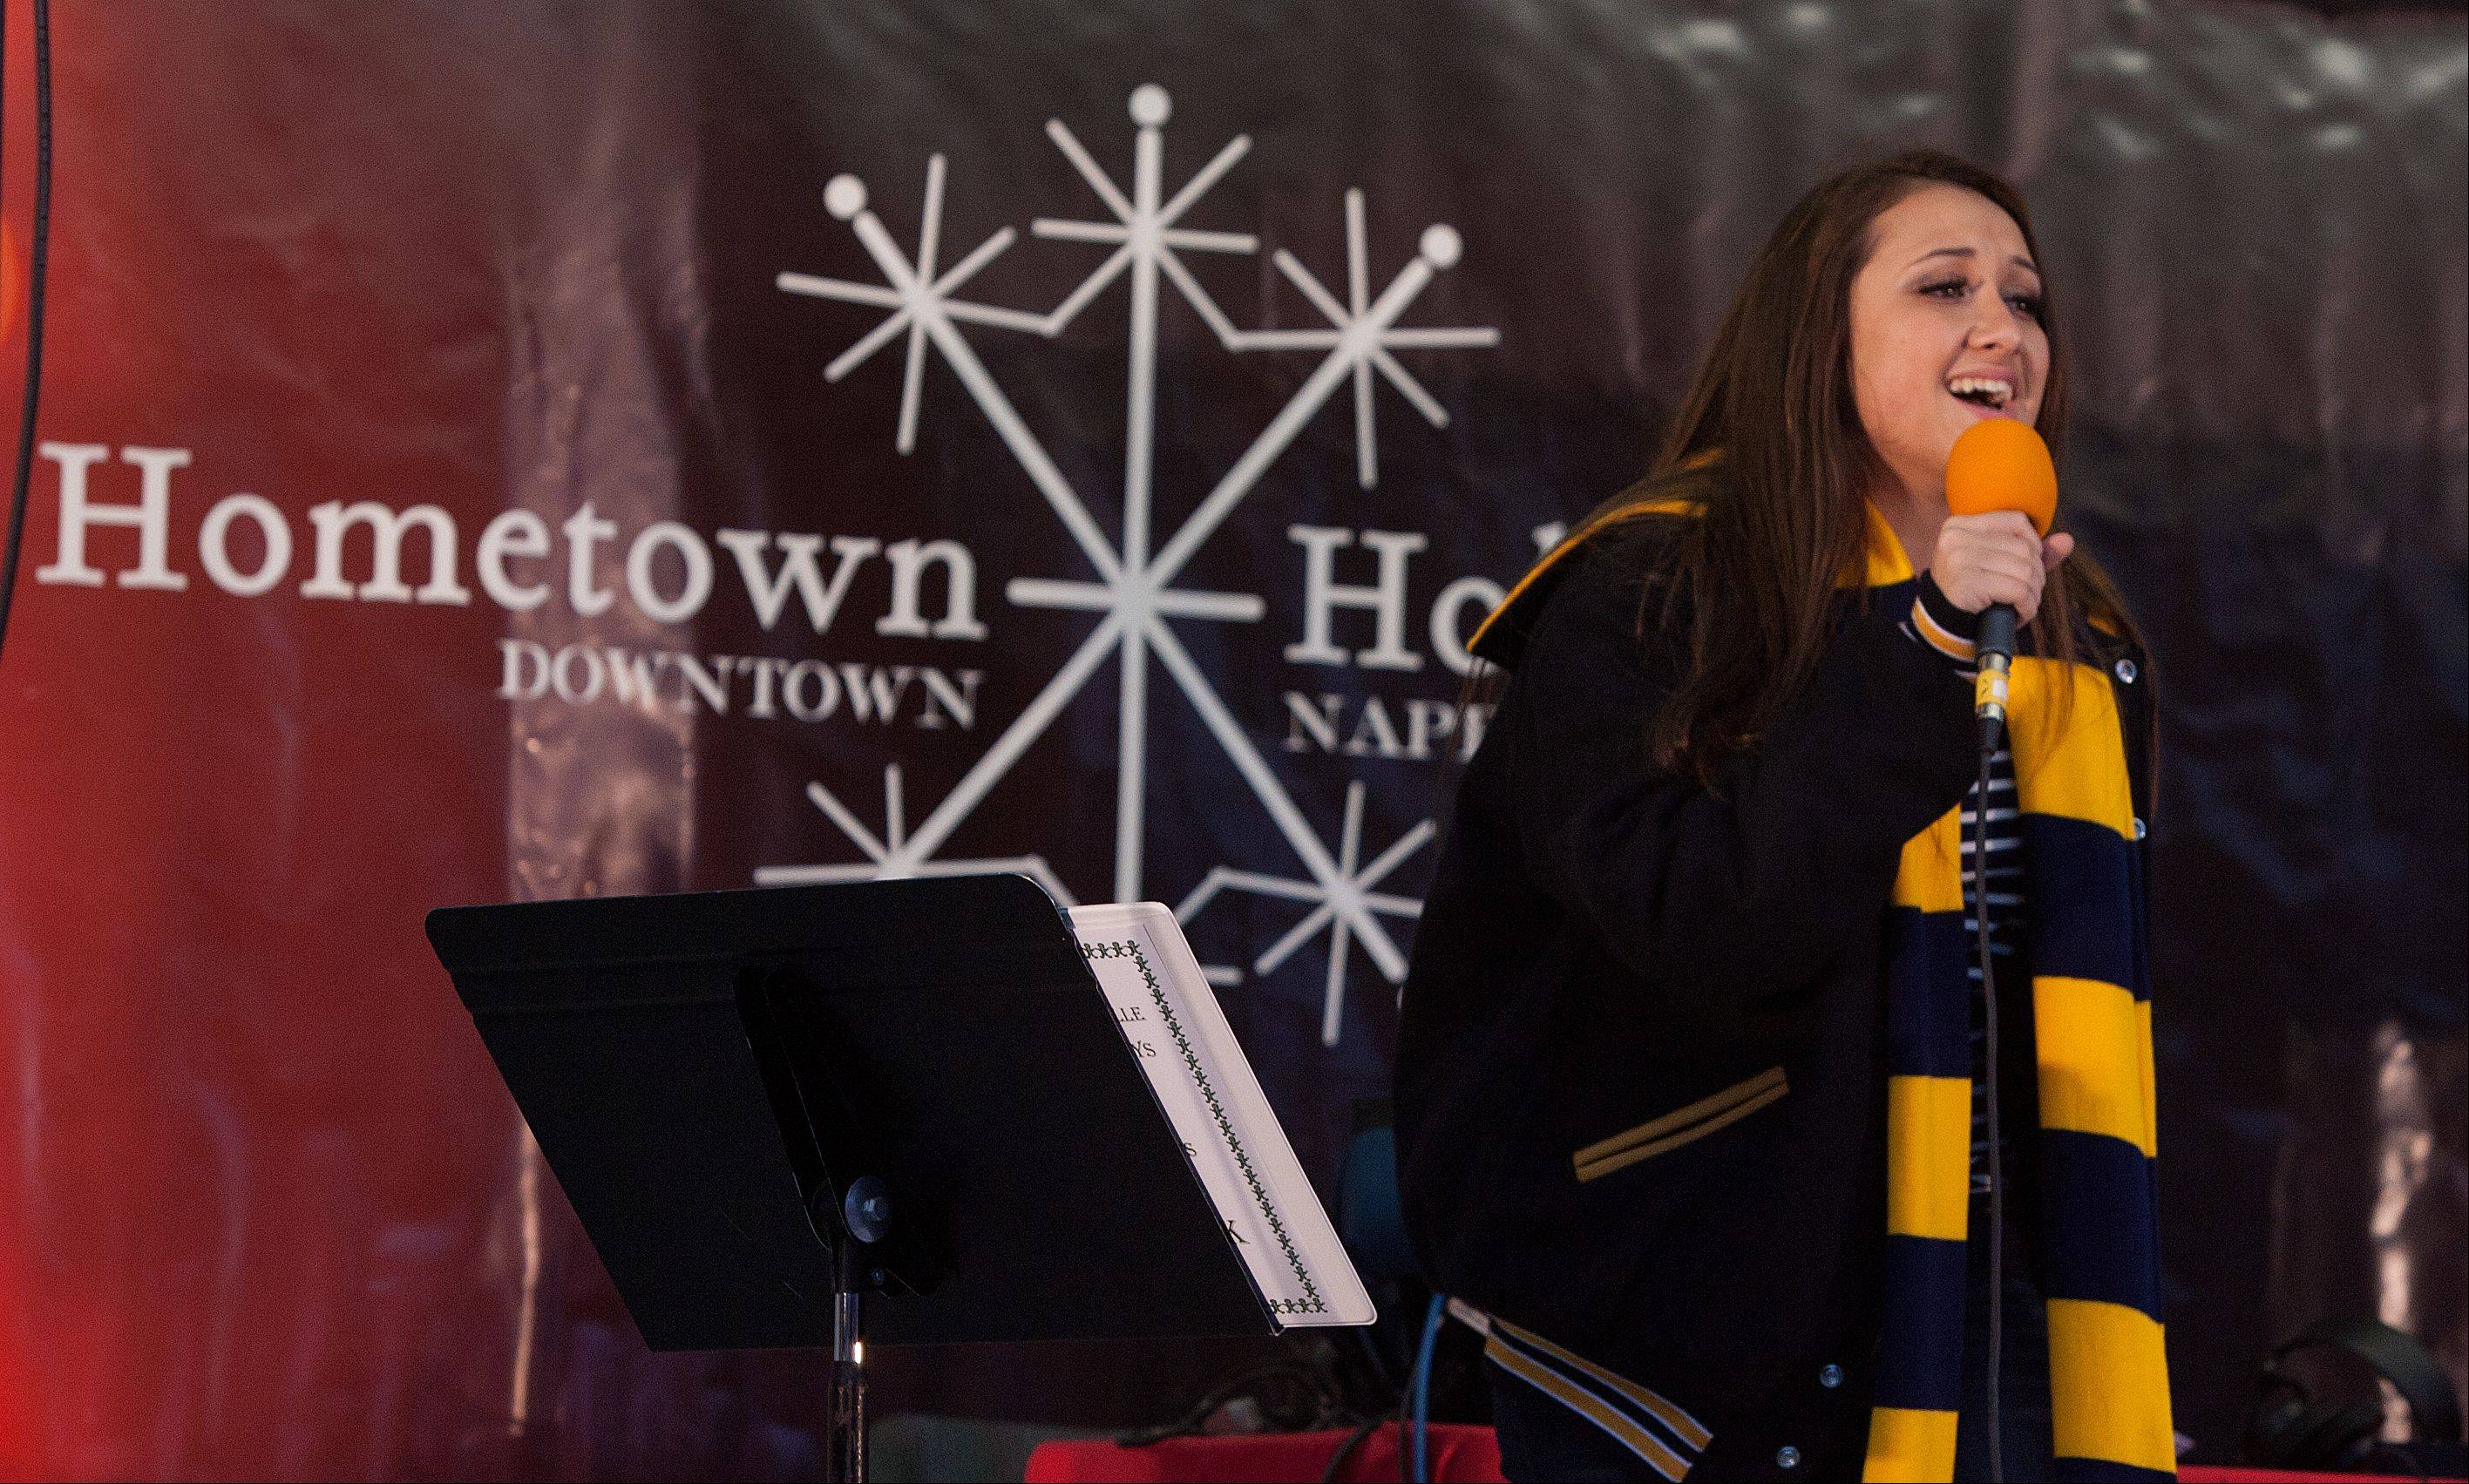 Neuqua Valley High School's Deanna Wisniewski sings holiday song on Saturday during Naperville's Hometown Holiday Celebration.